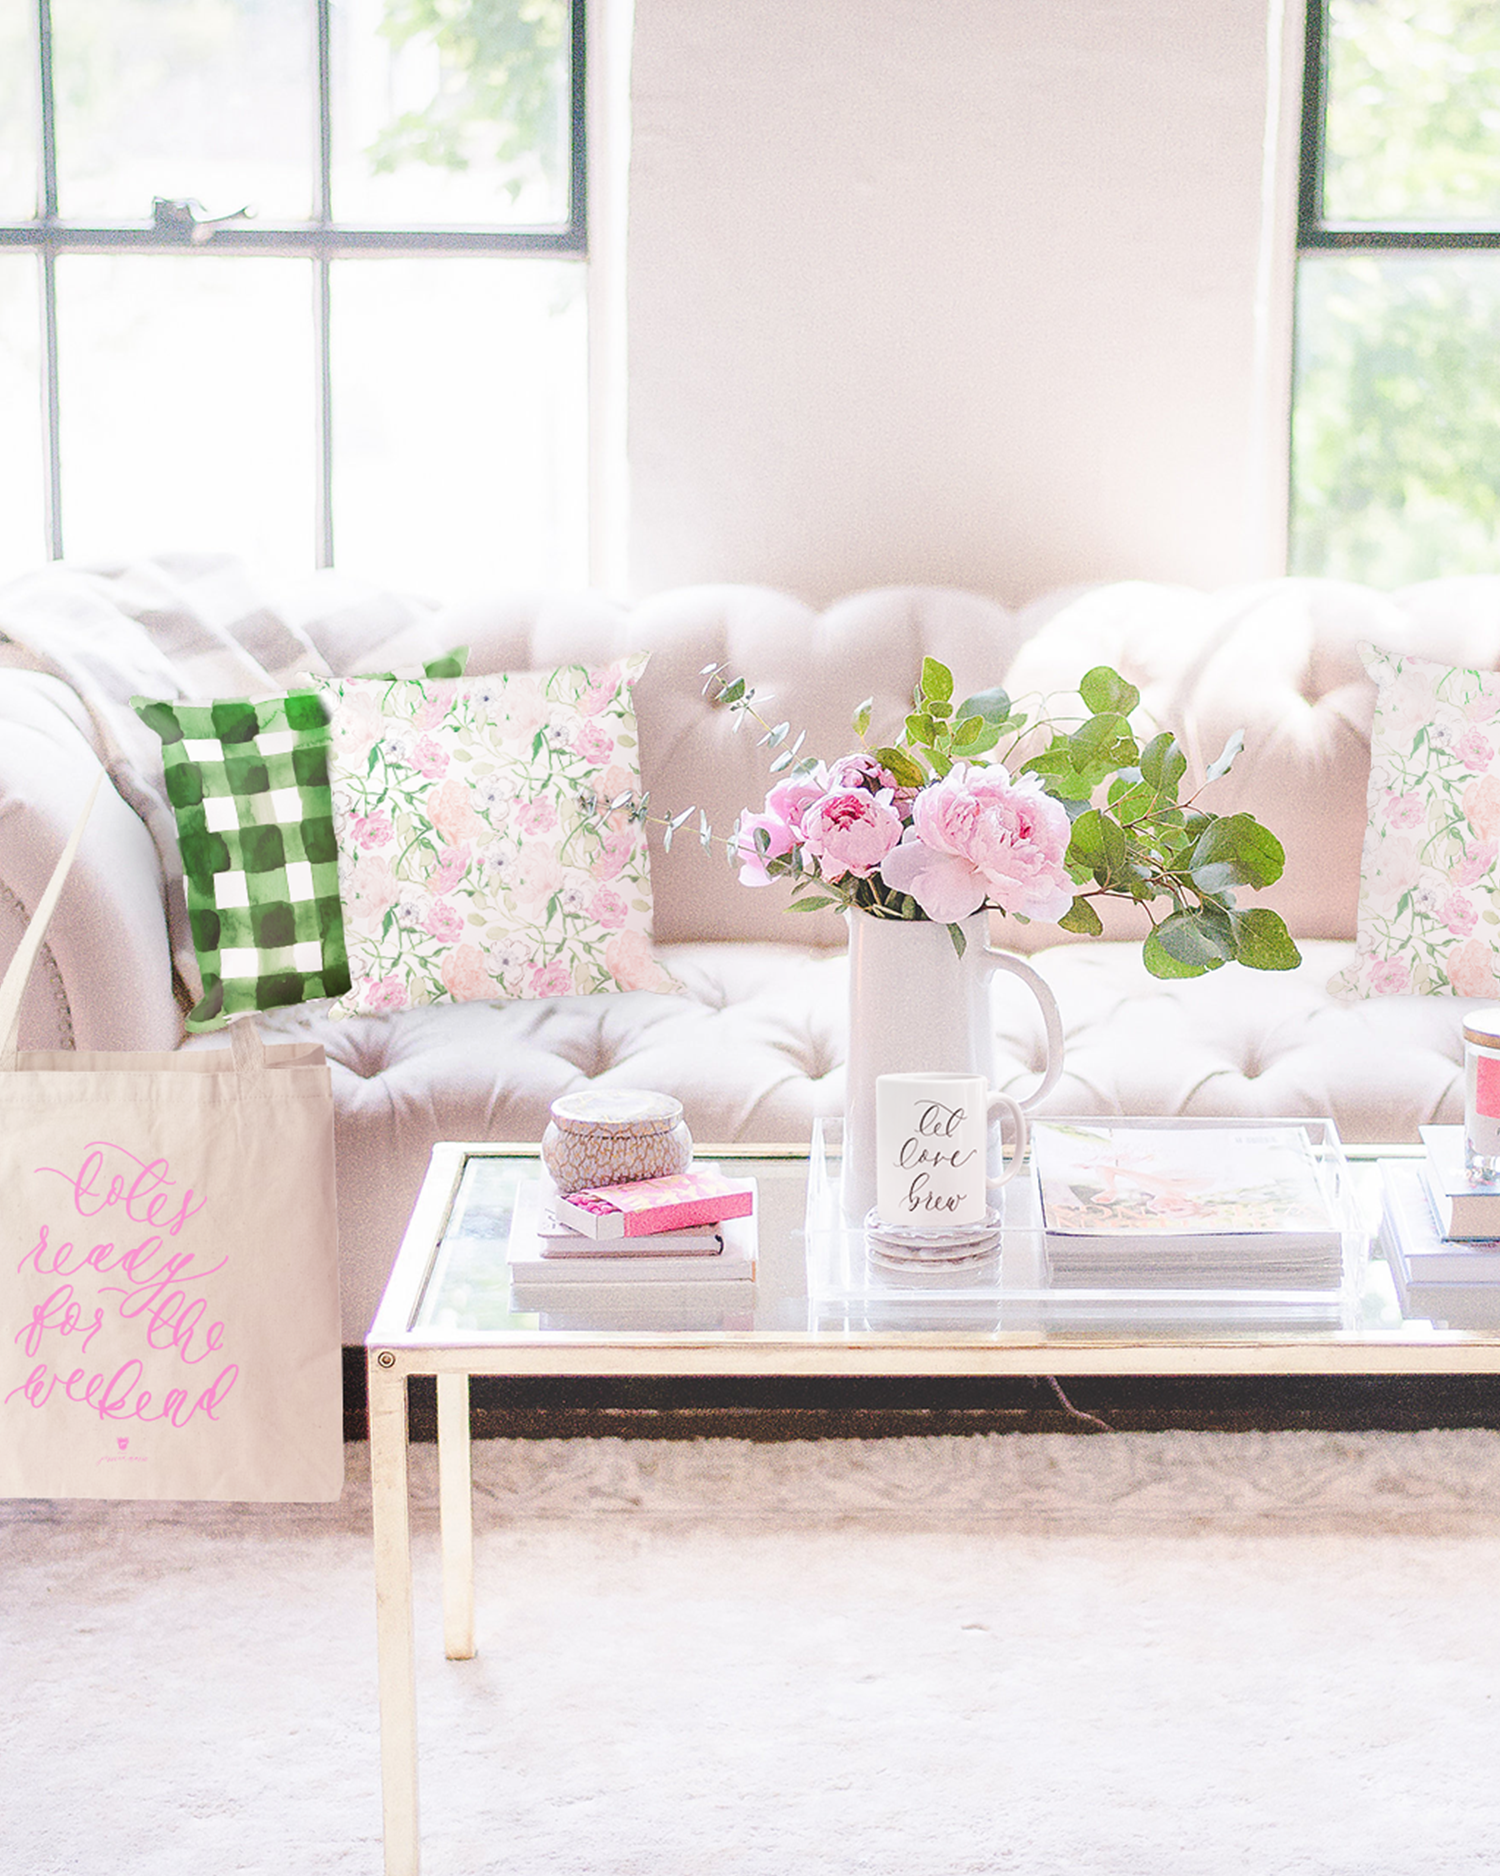 Simply Jessica Marie Lifestyle Collection of Calligraphy Mugs, Watercolor Pillows, and Calligraphy Tote Bags | Photo by Jaimie Carl Photography